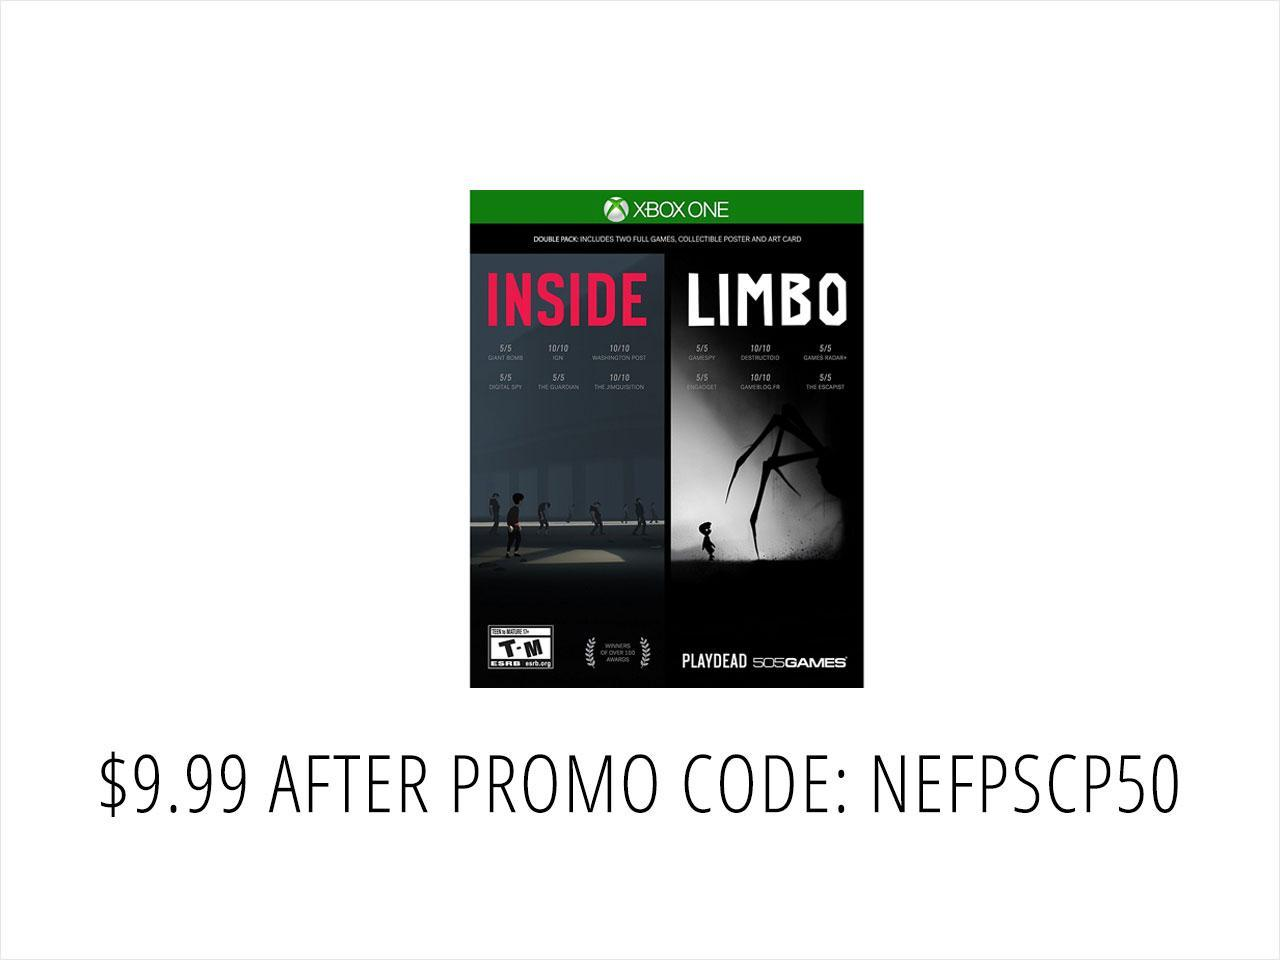 Inside/Limbo Double Pack - Xbox One